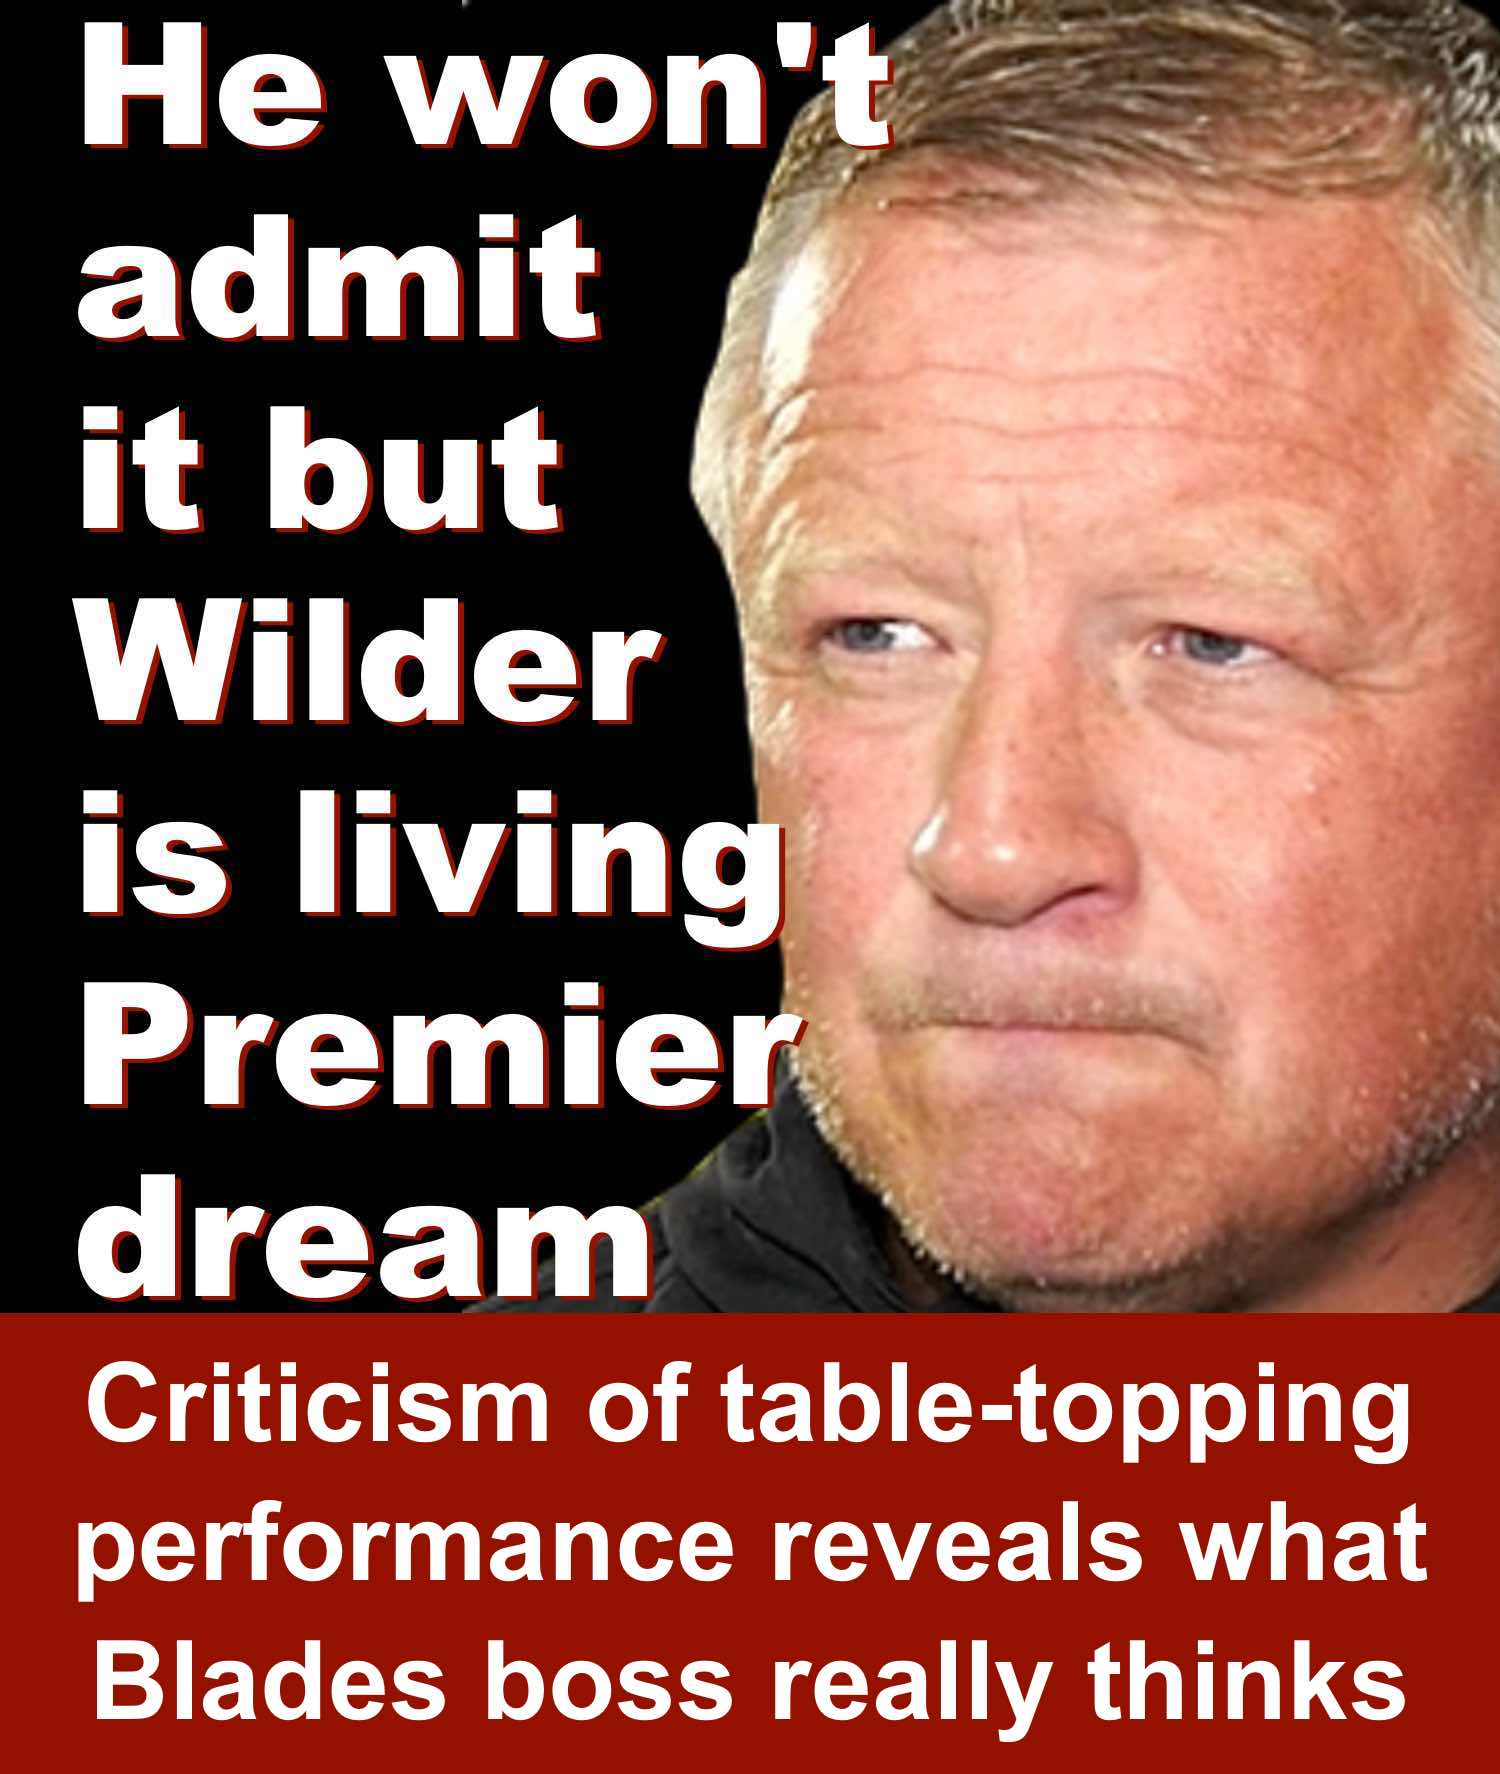 Sheffield United manager Chris Wilder's criticism of Blades table-topping win reveals his Premier dream